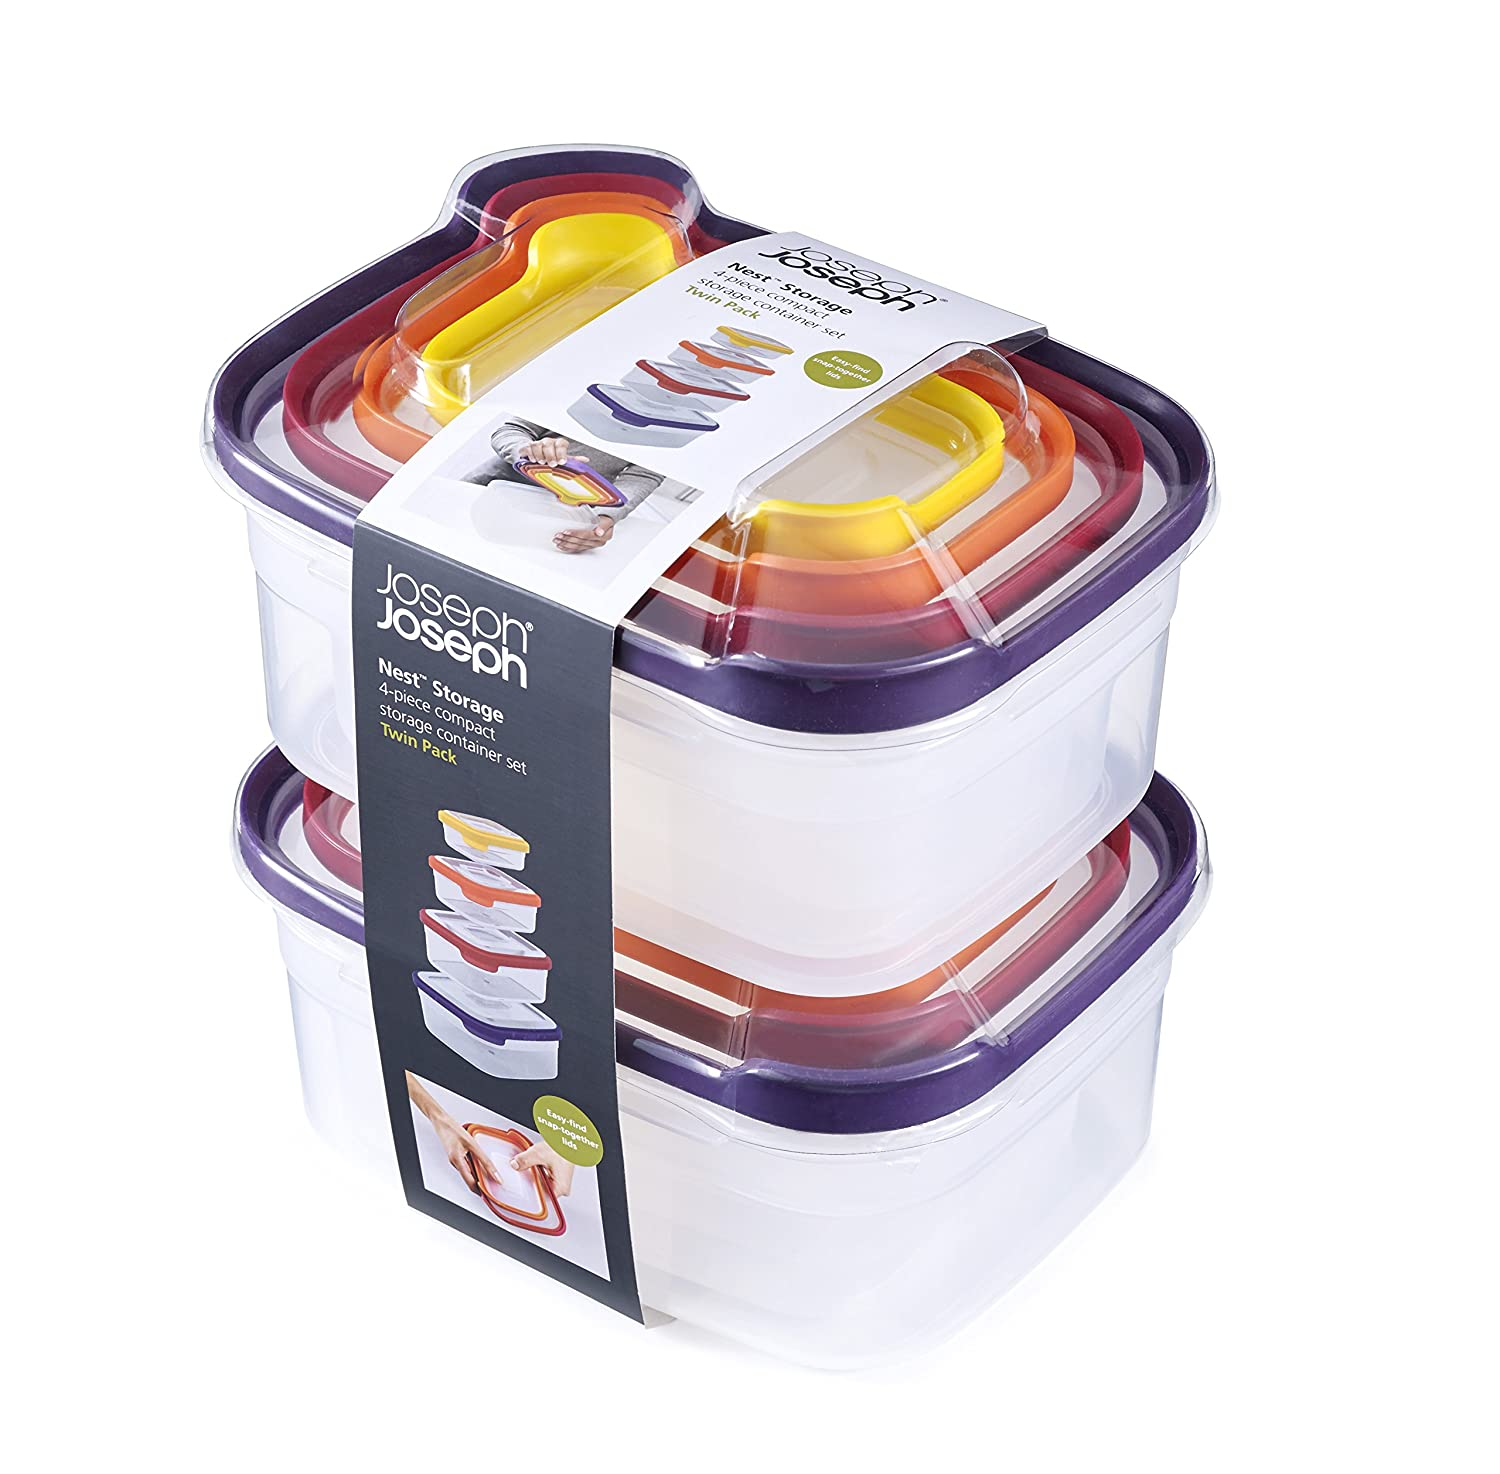 Amazon.com: Joseph Joseph 98193 Nest Storage Plastic Food Storage  Containers Set With Lids Airtight Microwave Safe, 16 Piece: Kitchen U0026 Dining